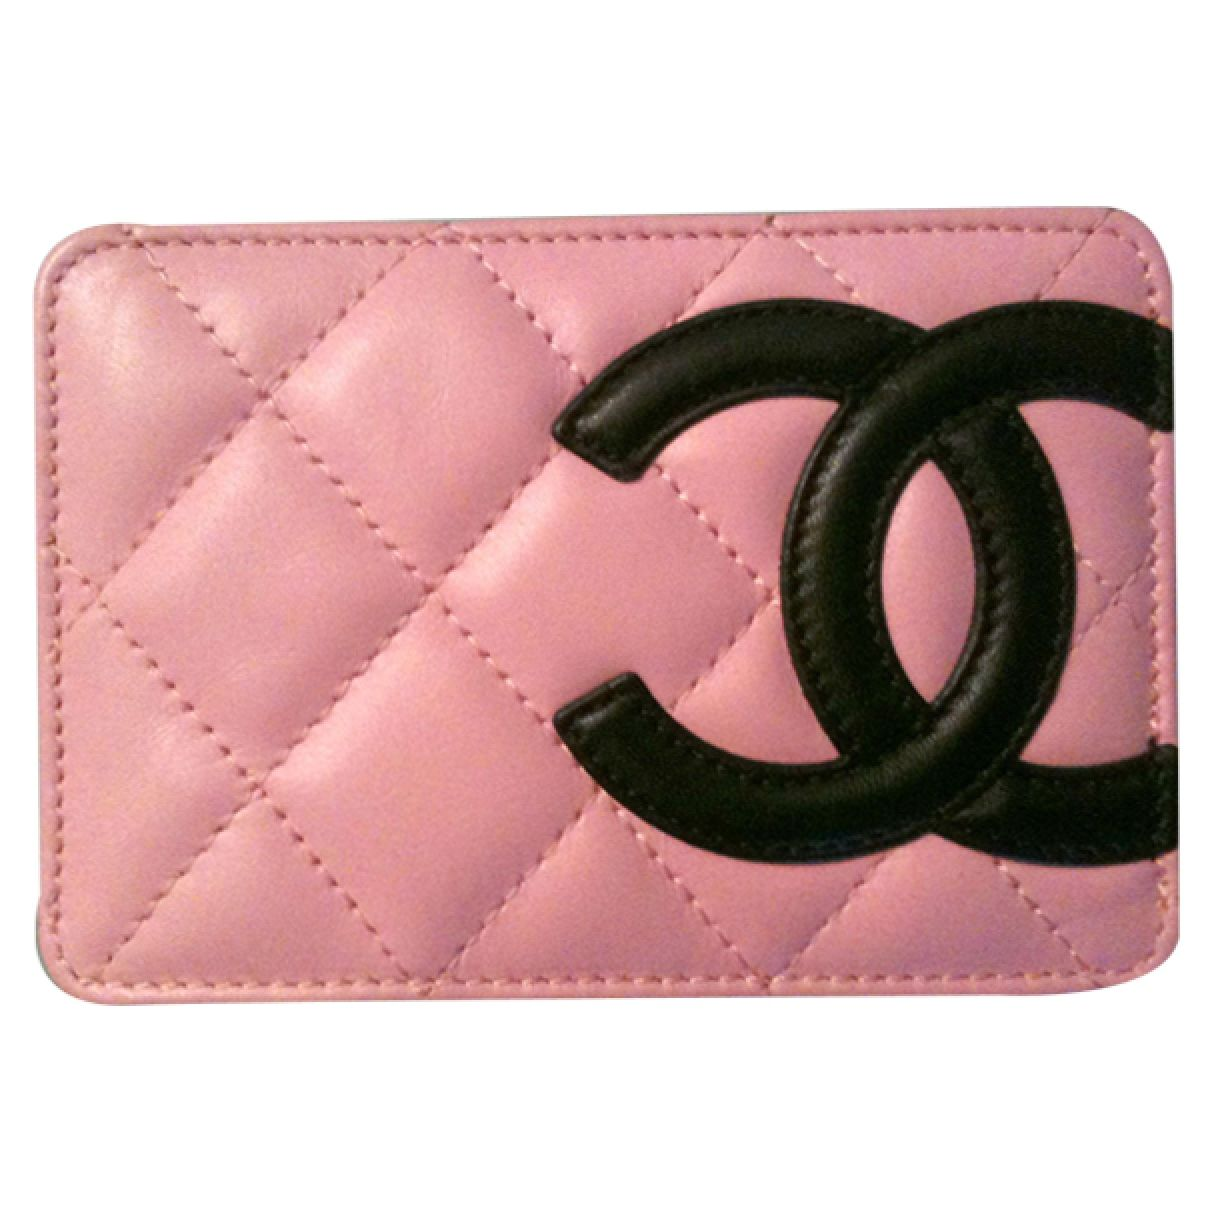 Cambon card holder chanel pink in leather all seasons